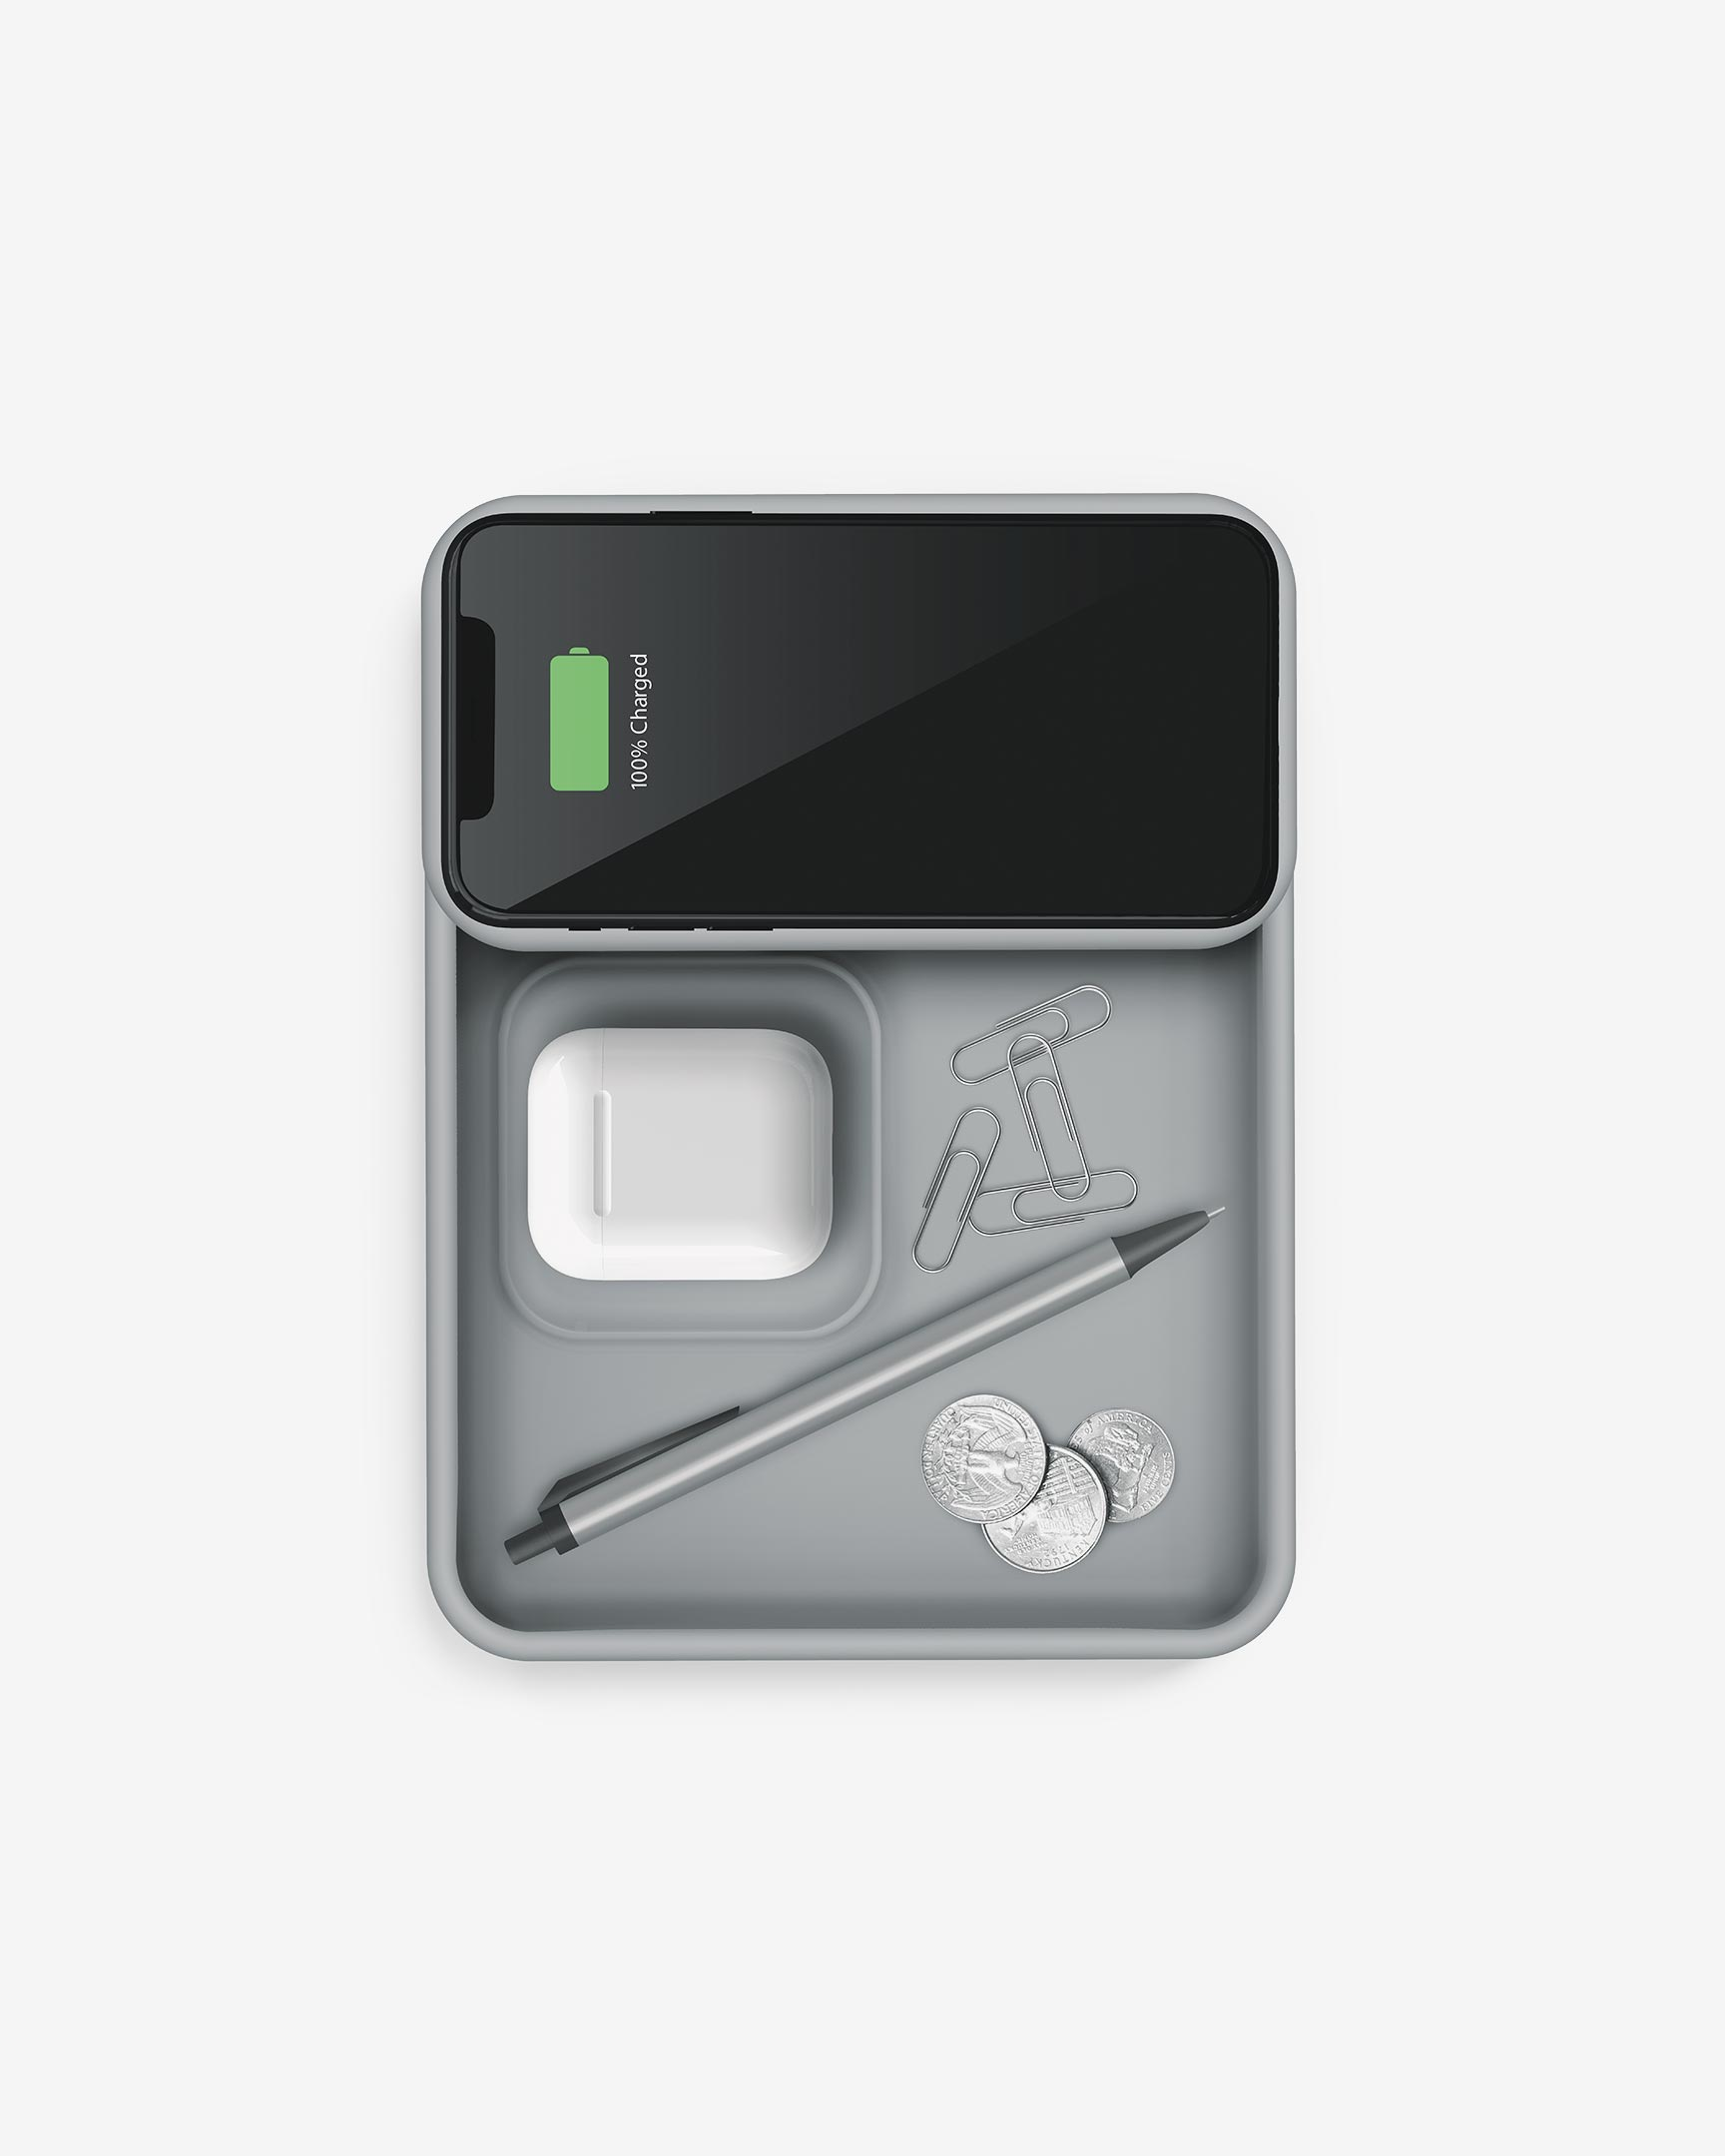 Tylt Tray Pivot charging devices